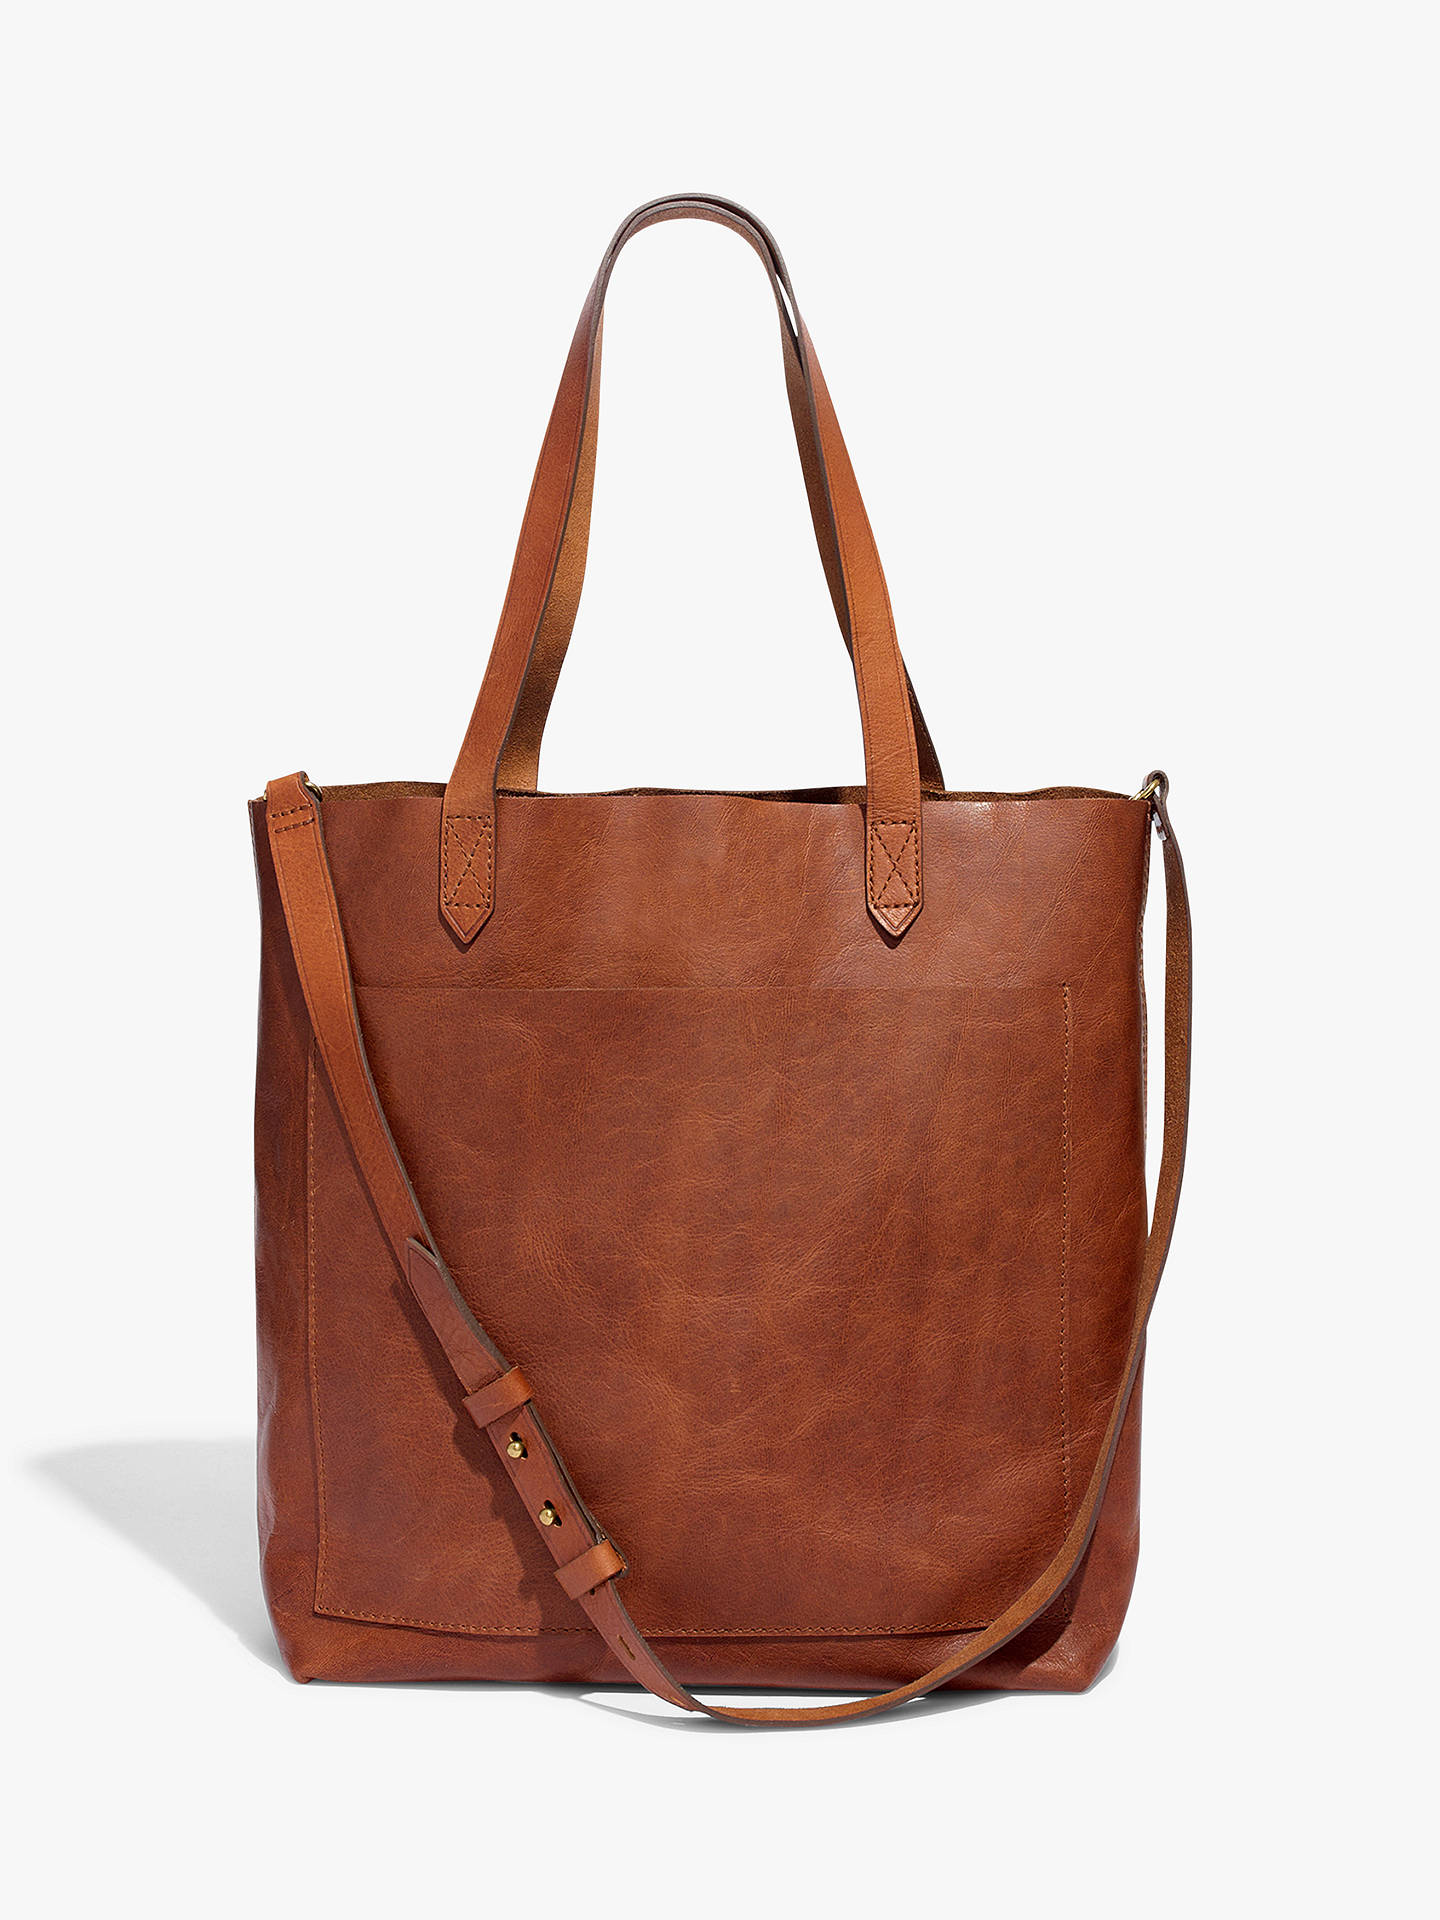 21aa972c4e82 Buy Madewell Leather Medium Transport Tote Bag, English Saddle Online at  johnlewis.com ...